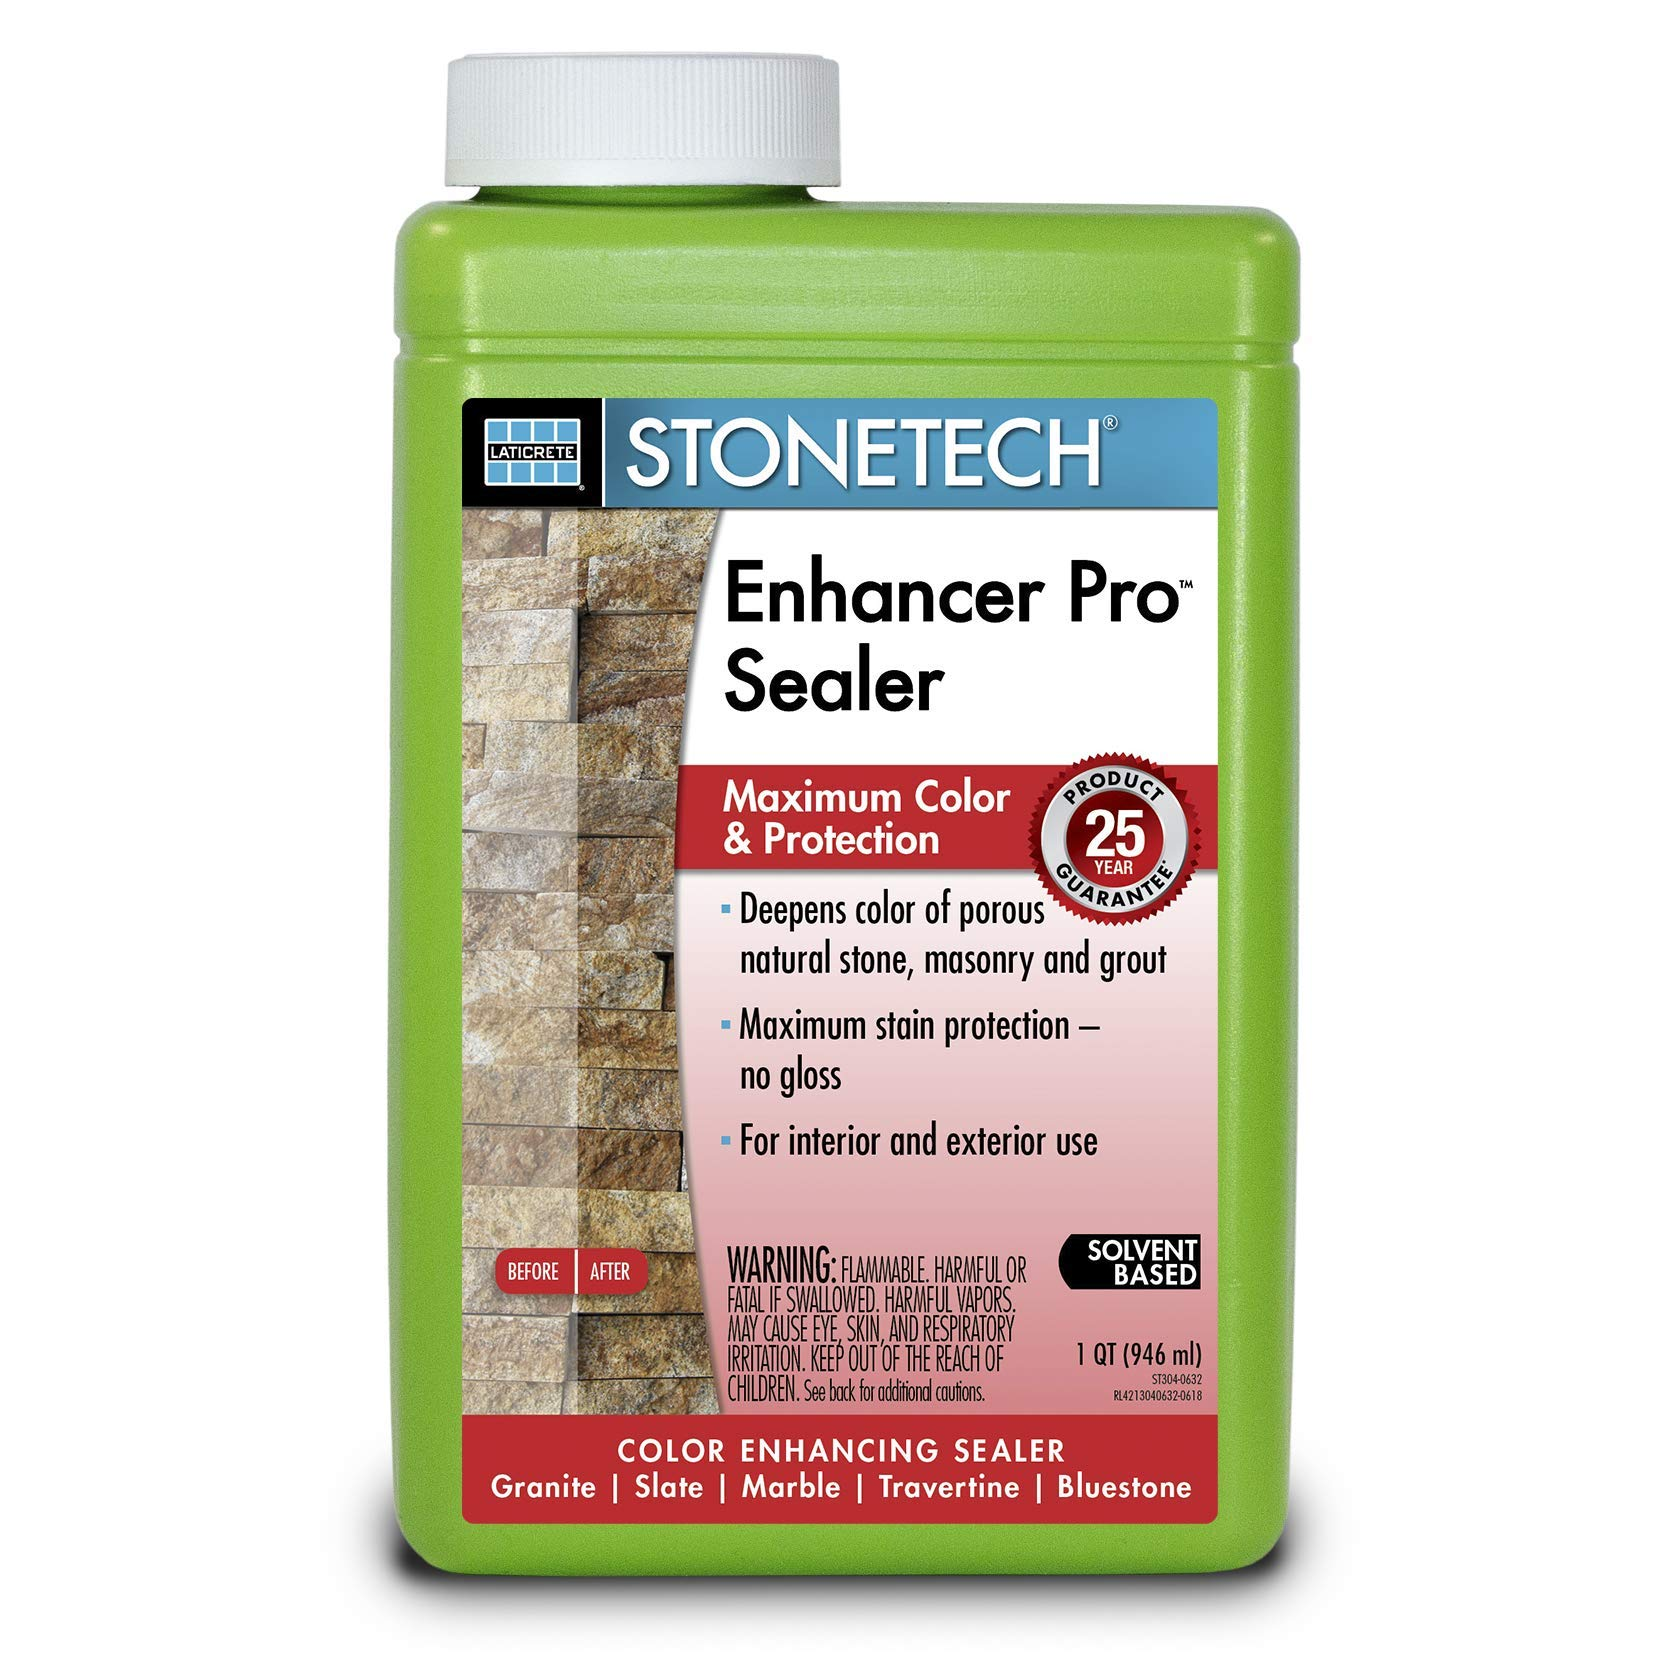 Laticrete Stonetech Enhancer Pro Sealer - 1-Quart by Laticrete